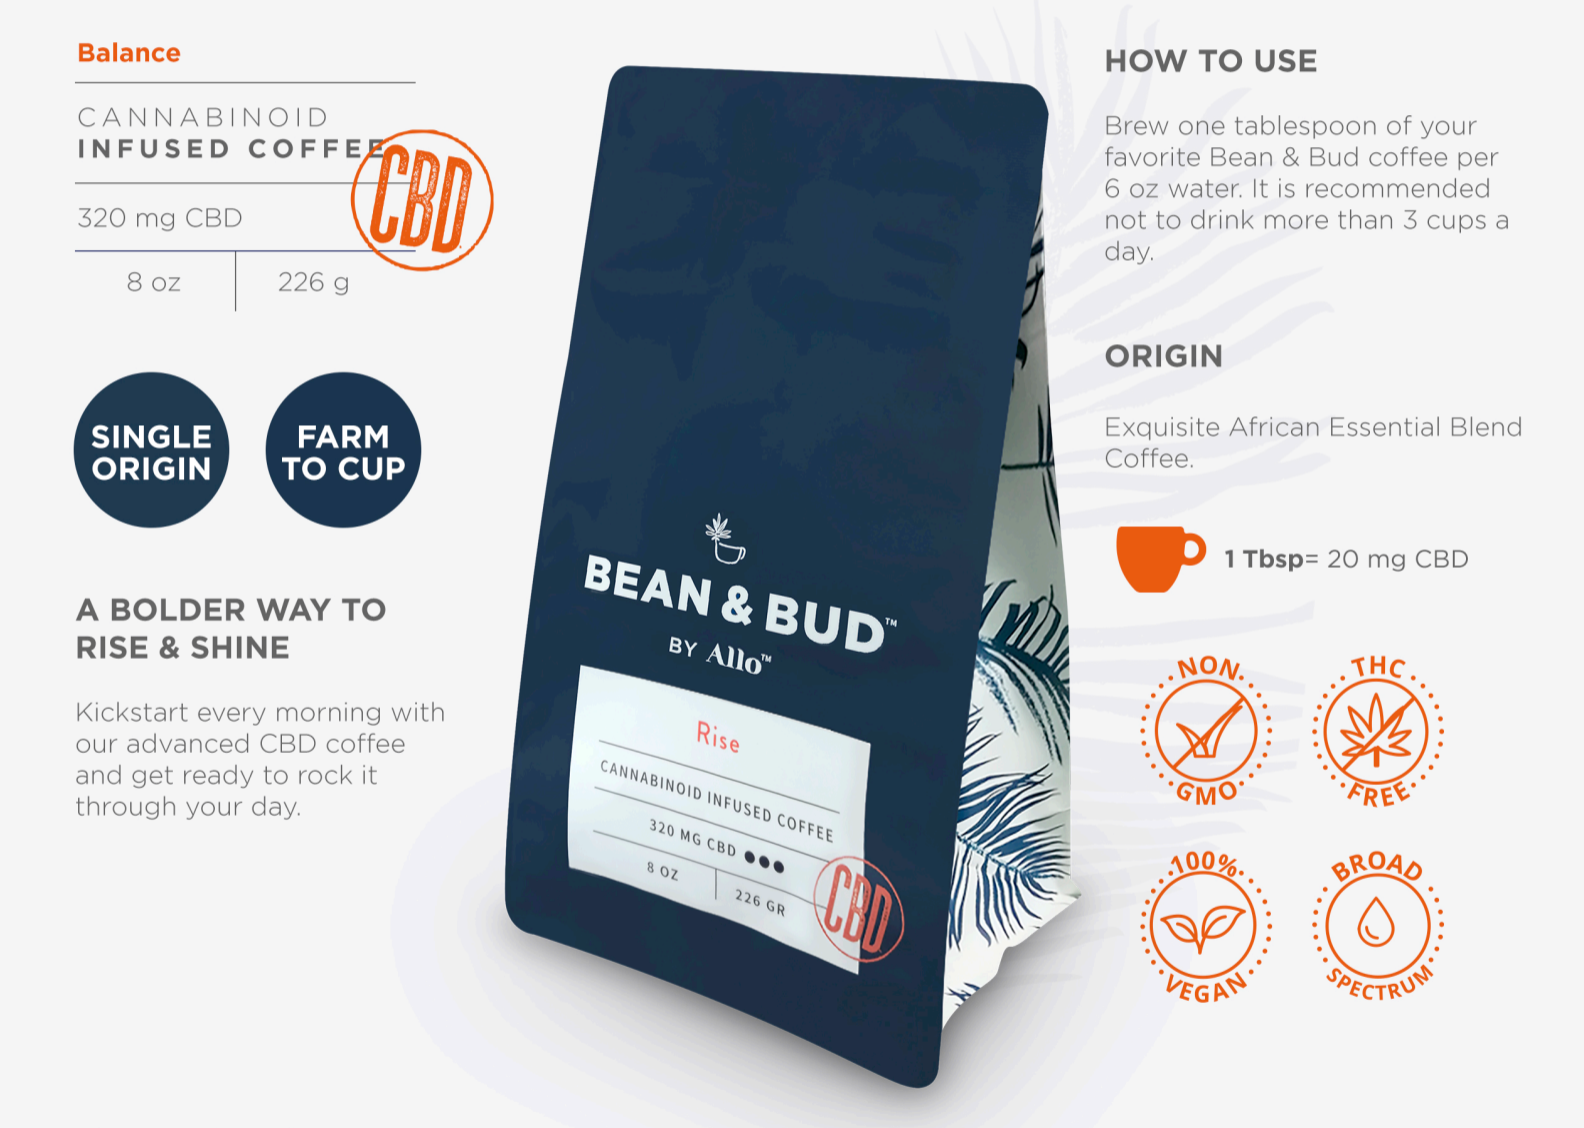 Bean & Bud RISE CBD Coffee